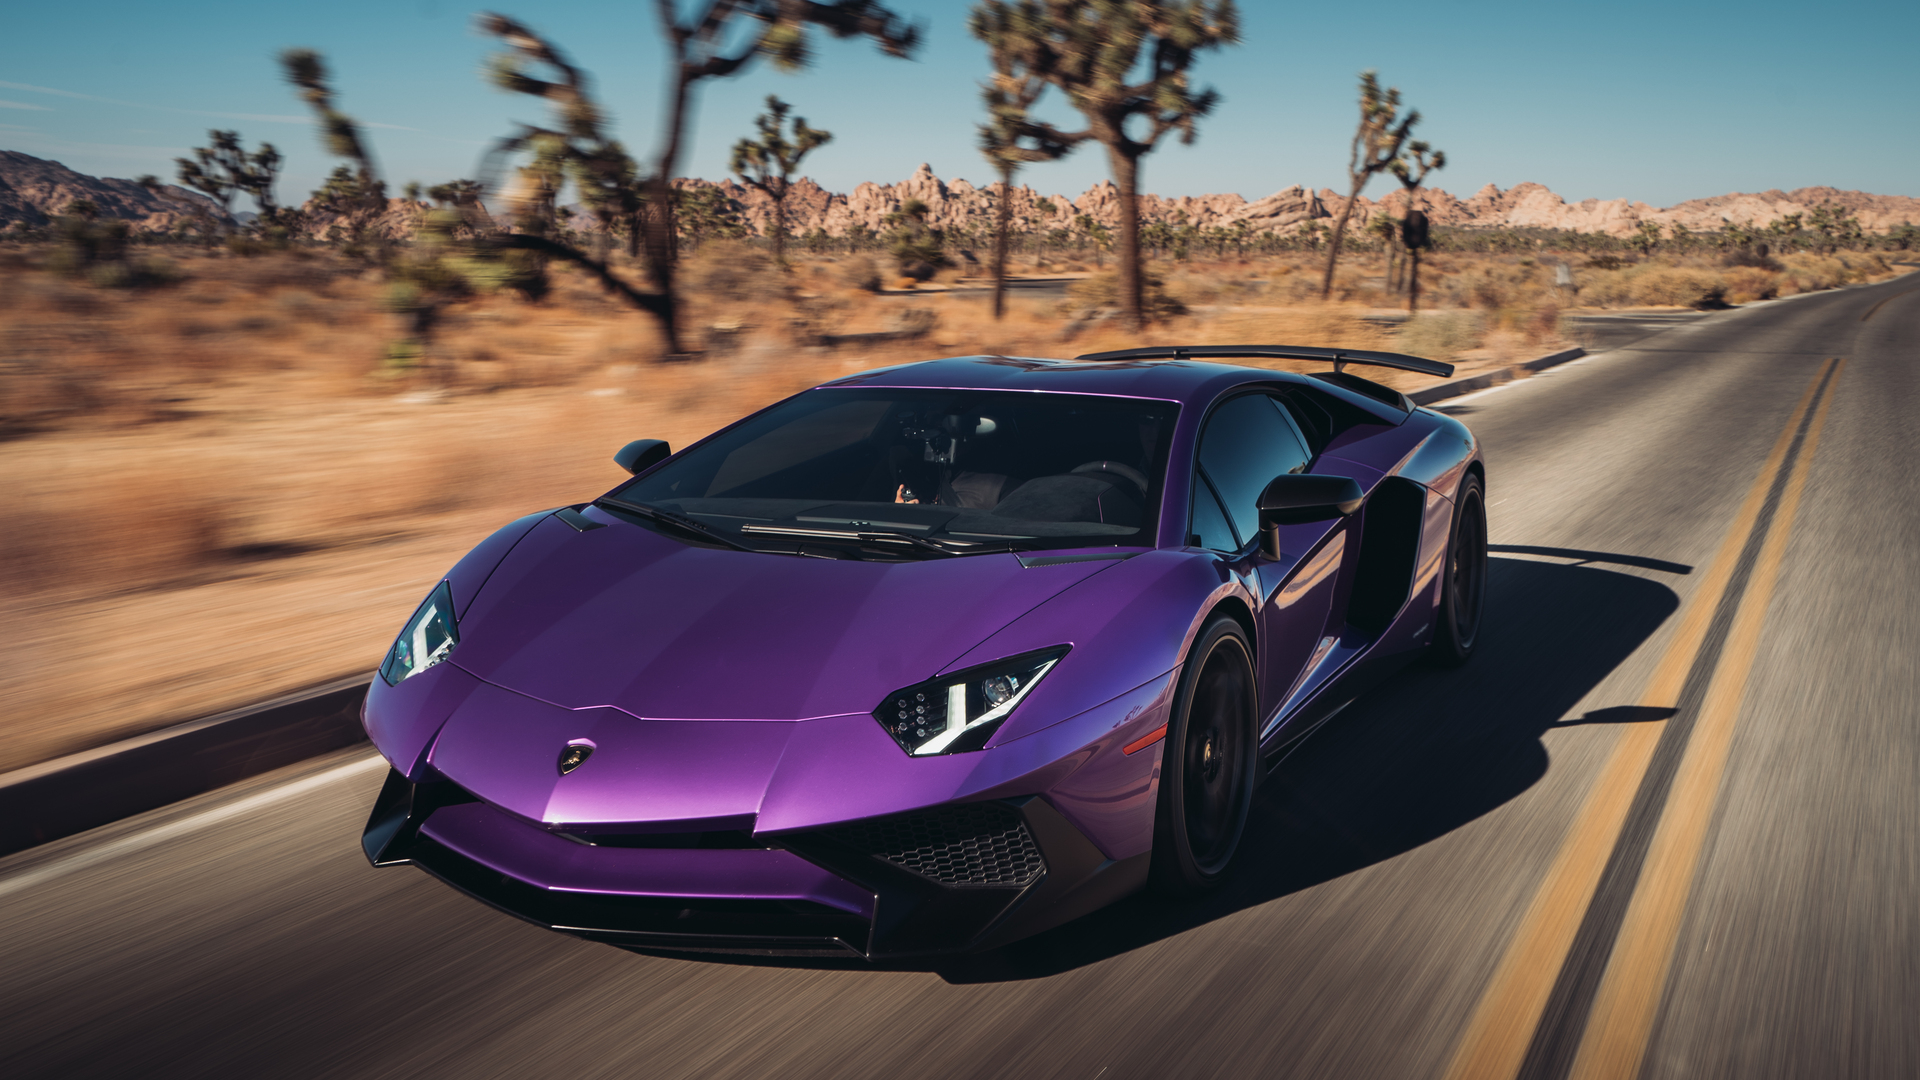 1920x1080 lamborghini aventador lp 750 sv 5k laptop full hd 1080p hd 4k wallpapers images